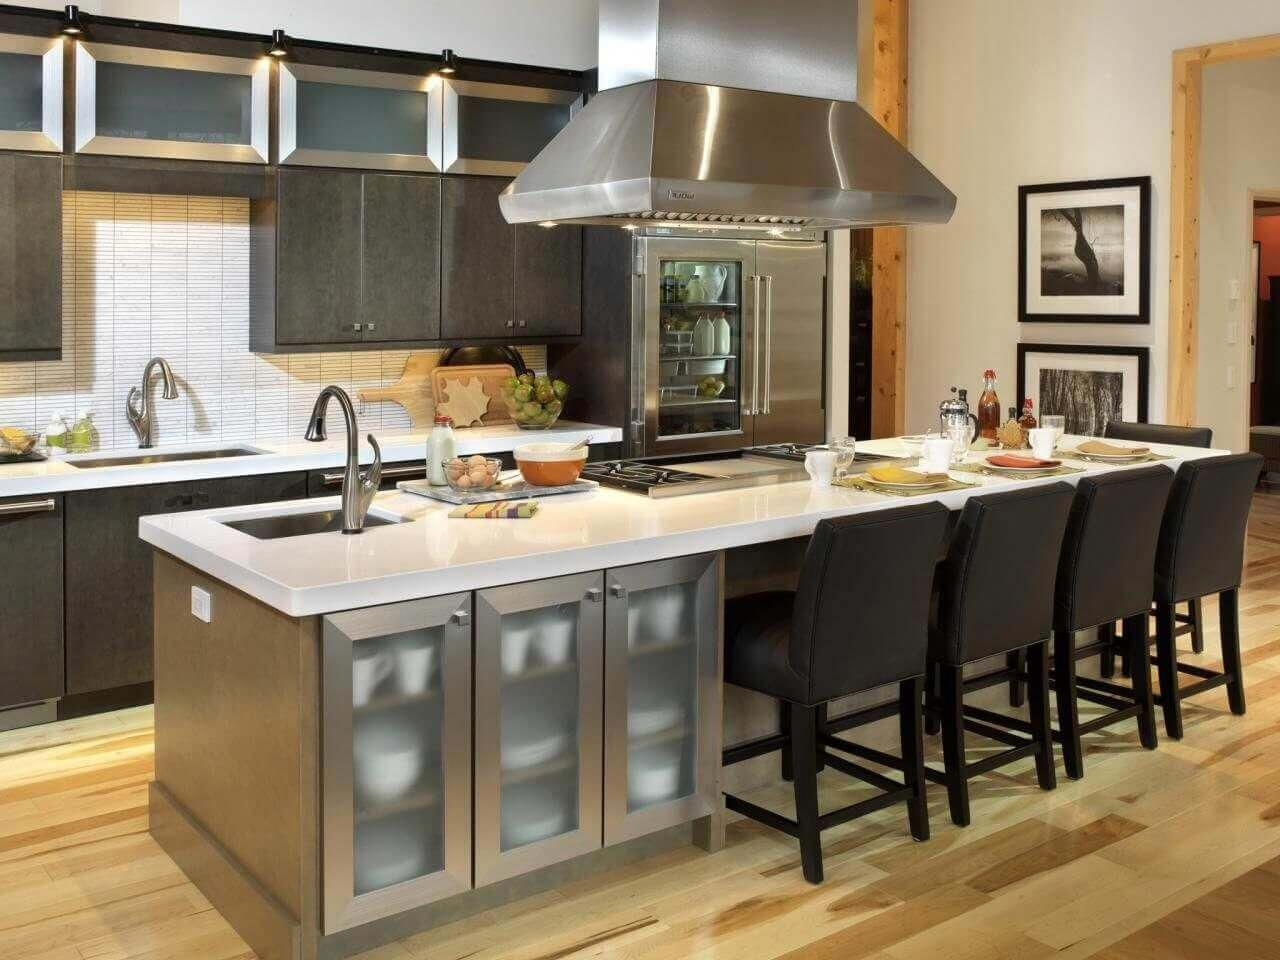 This Long Kitchen Island With Seating Has A Large Sink A Cooktop